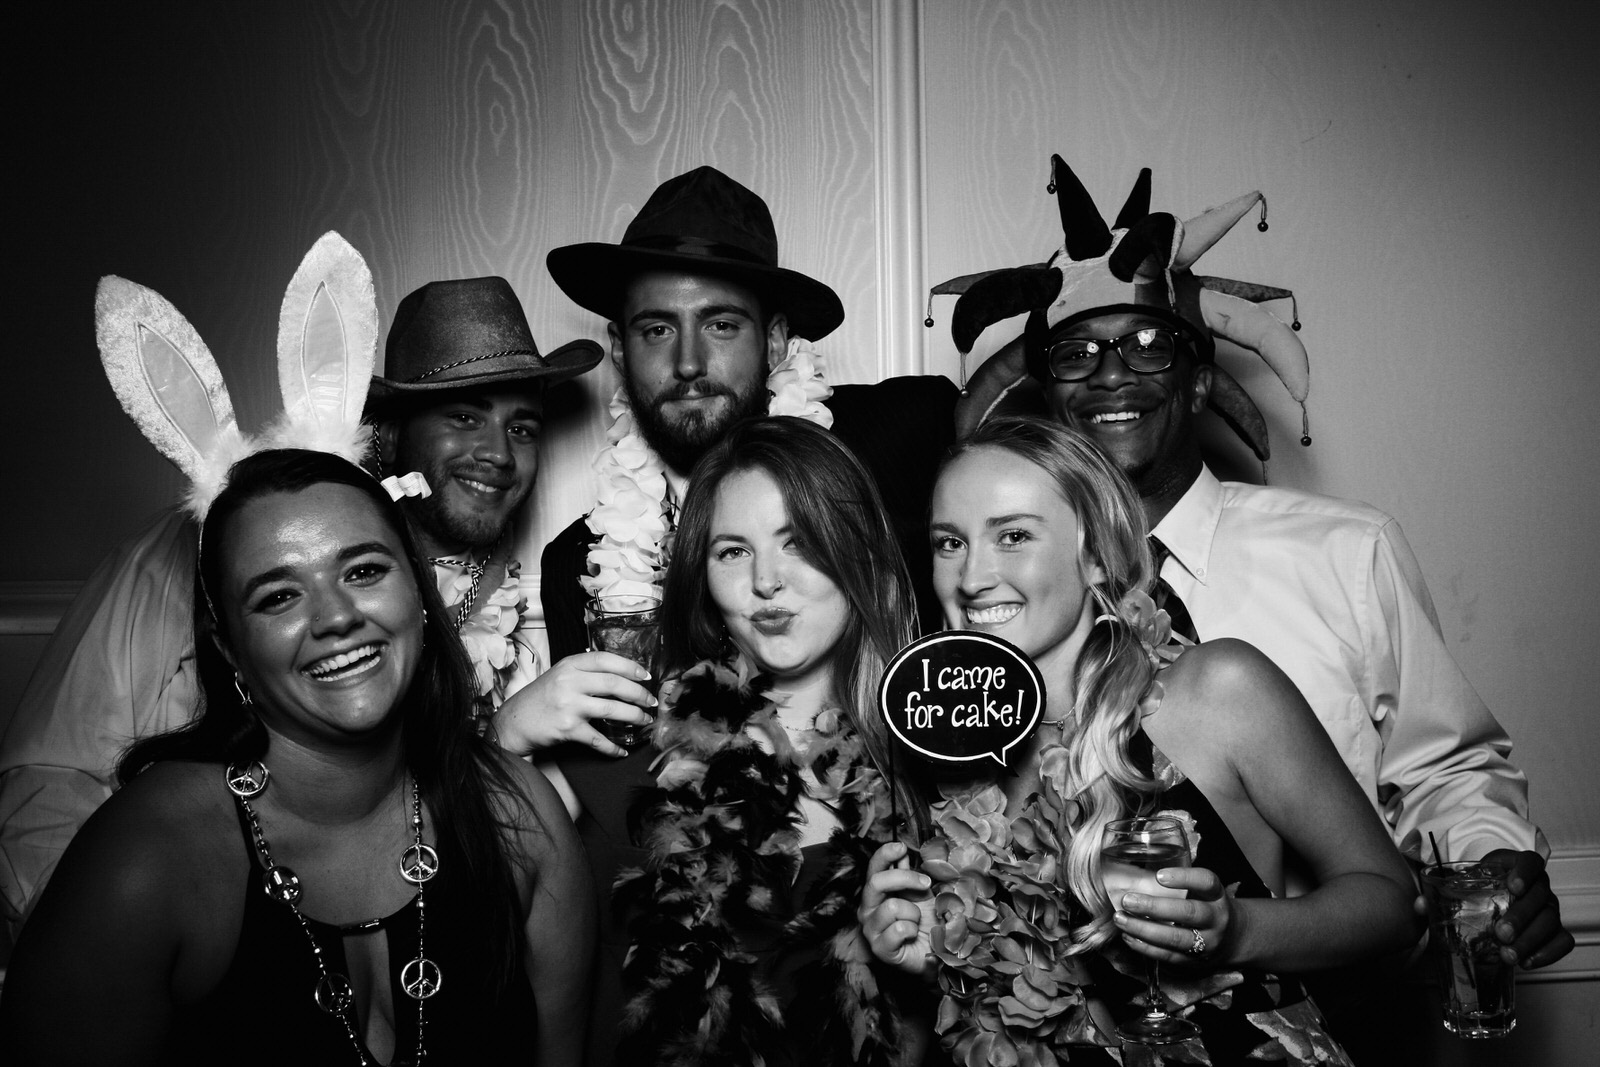 Ashley-Tyrone-Wedding-Photo-Booth-Presidential_Norristown-Wedding-19.jpg